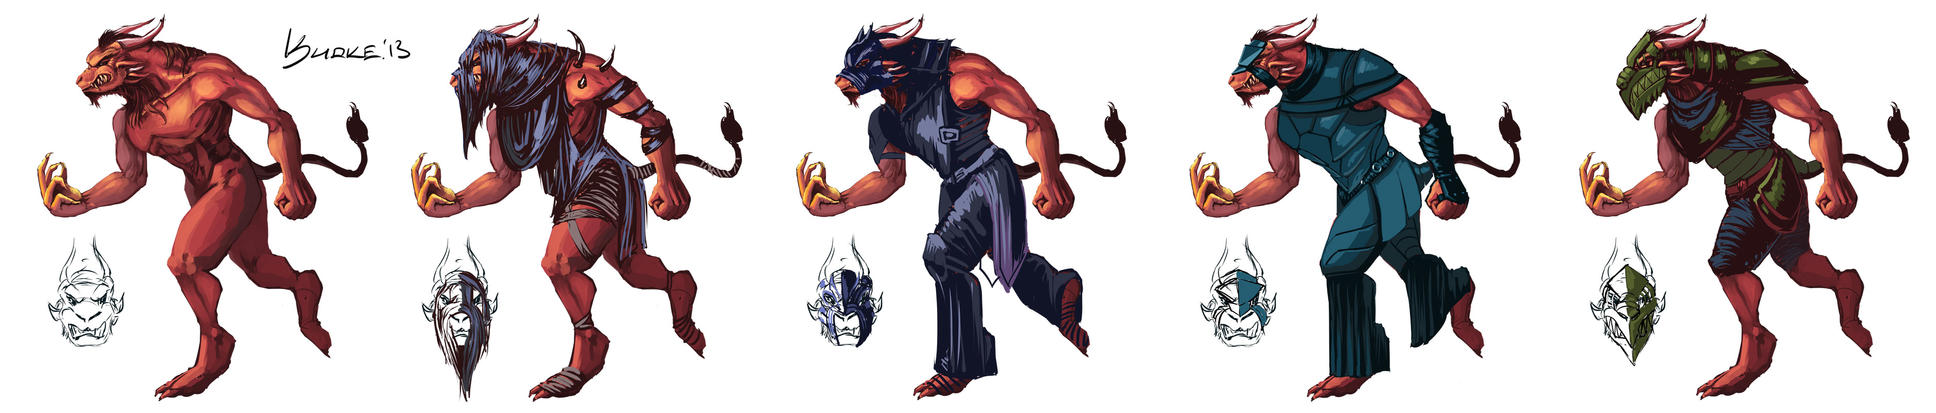 Charr Suits by kuoke